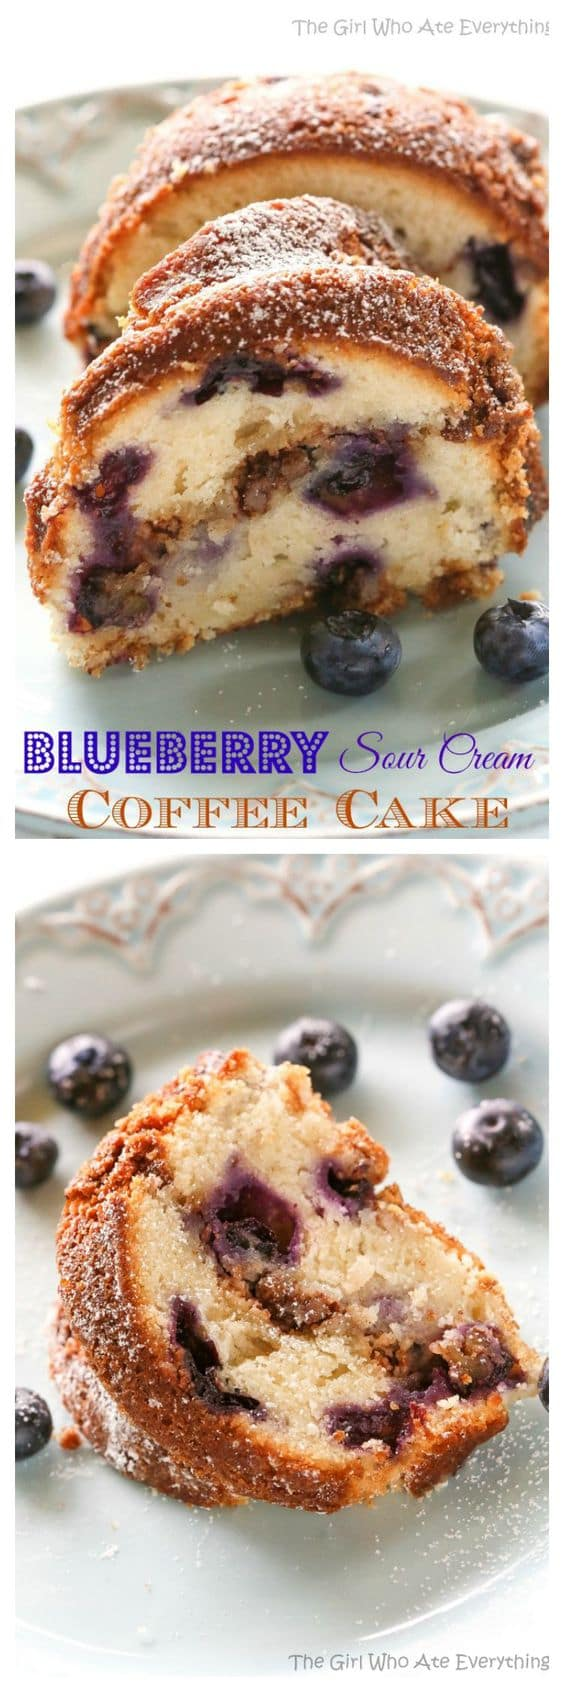 Blueberry Sour Cream Coffee Cake - a dense and delicious! the-girl-who-ate-everything.com